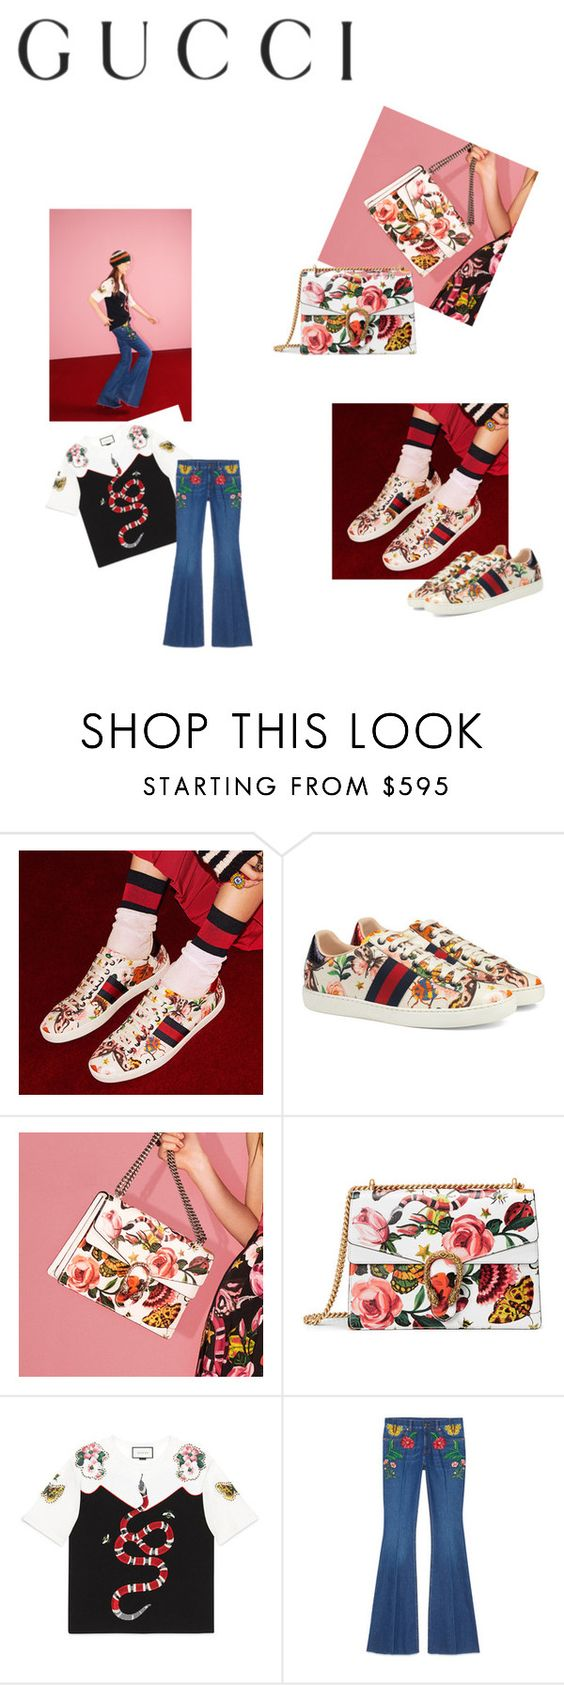 """""""Presenting the Gucci Garden Exclusive Collection: Contest Entry"""" by wqt1 ❤ liked on Polyvore featuring Gucci and gucci"""